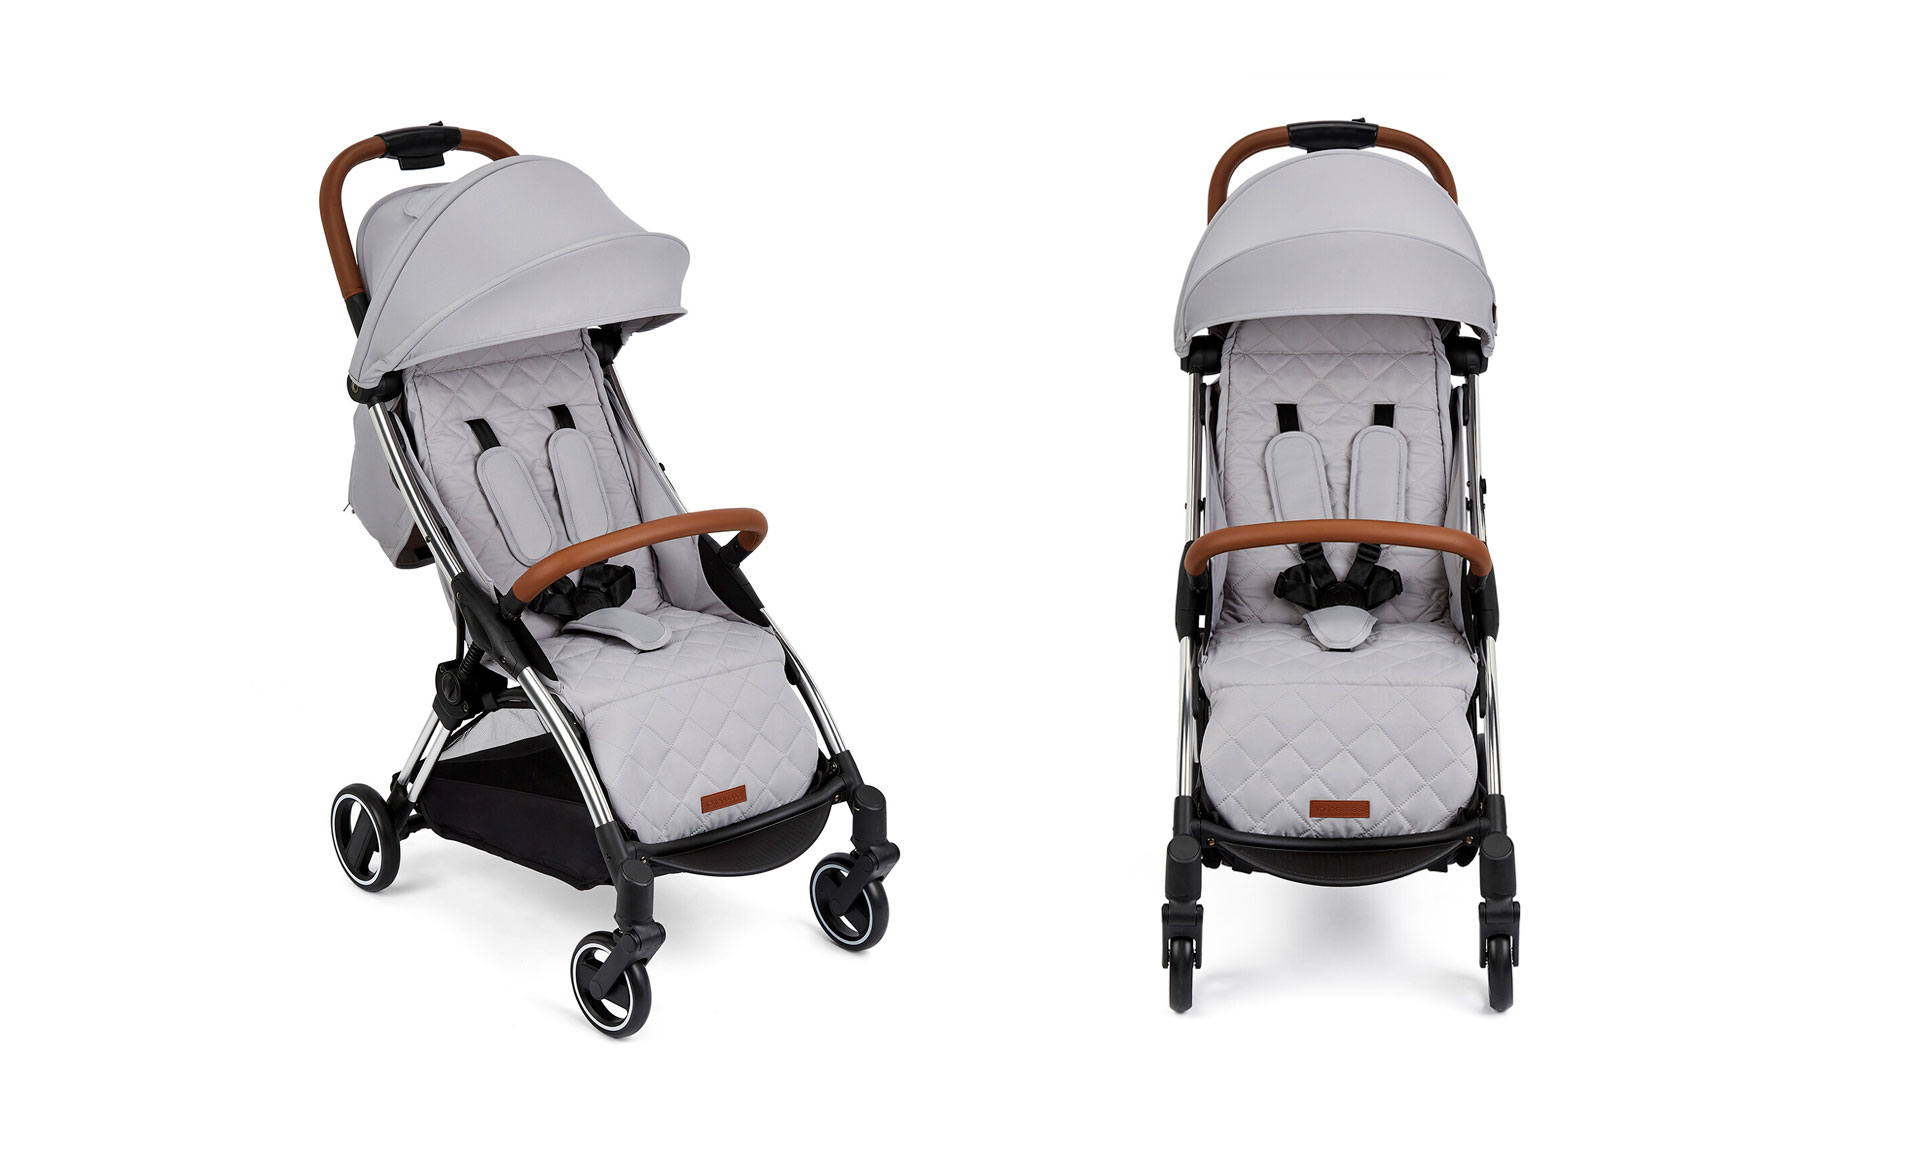 Pushchair recall: Ickle Bubba Gravity Max Auto-Fold stroller recalled due to safety issues – Which? News